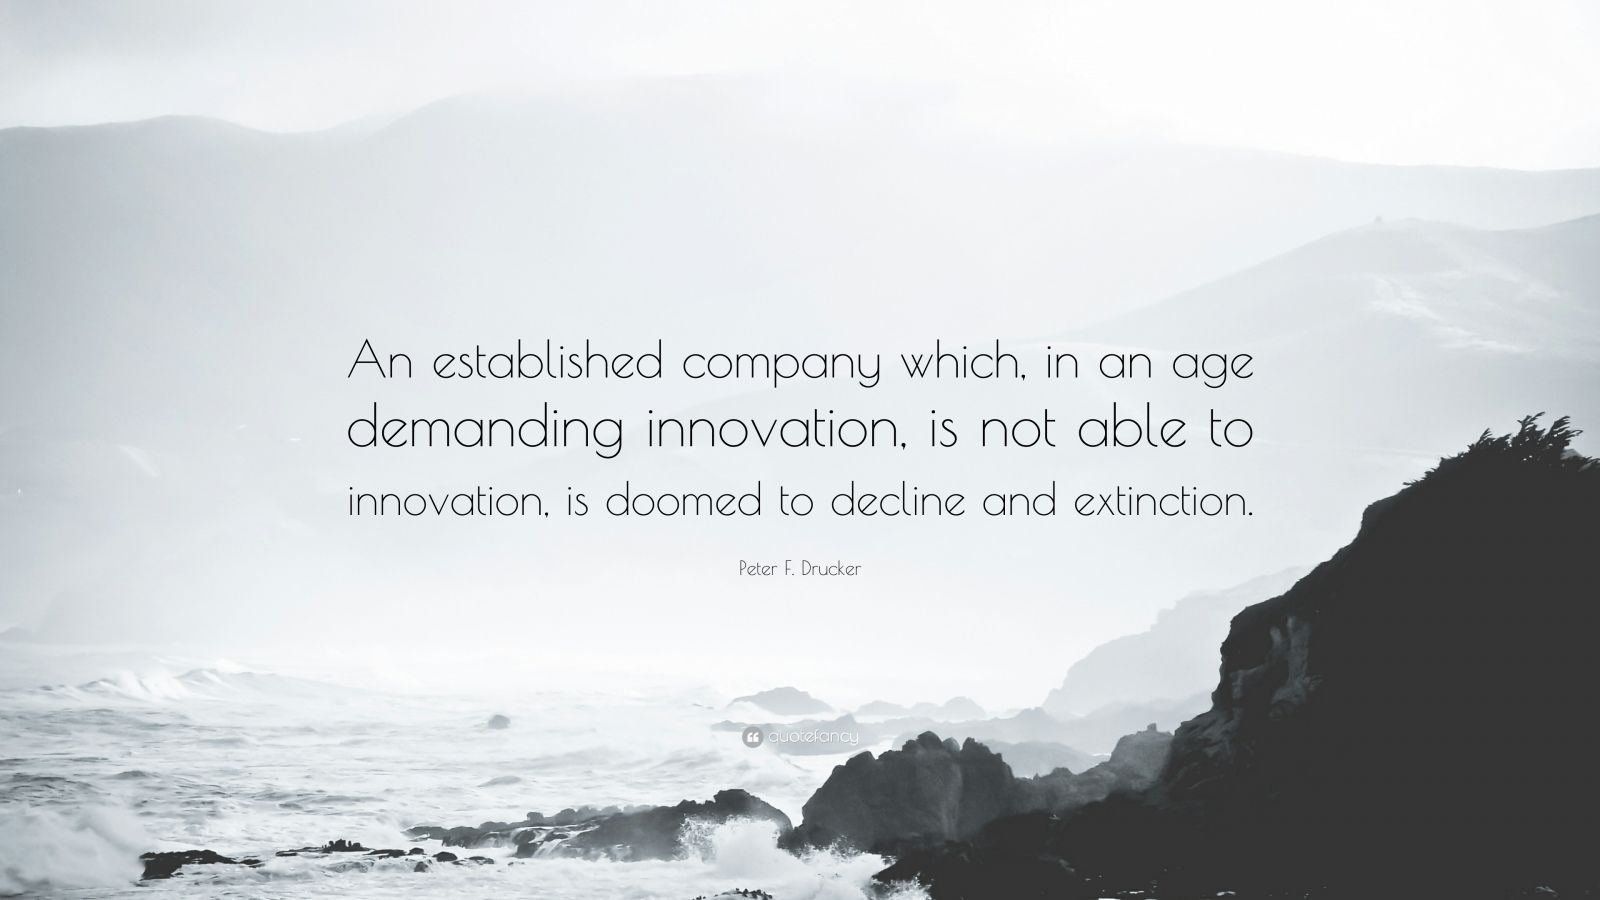 """Peter F. Drucker Quote: """"An established company which, in an age demanding innovation, is not able to innovation, is doomed to decline and extinction."""""""